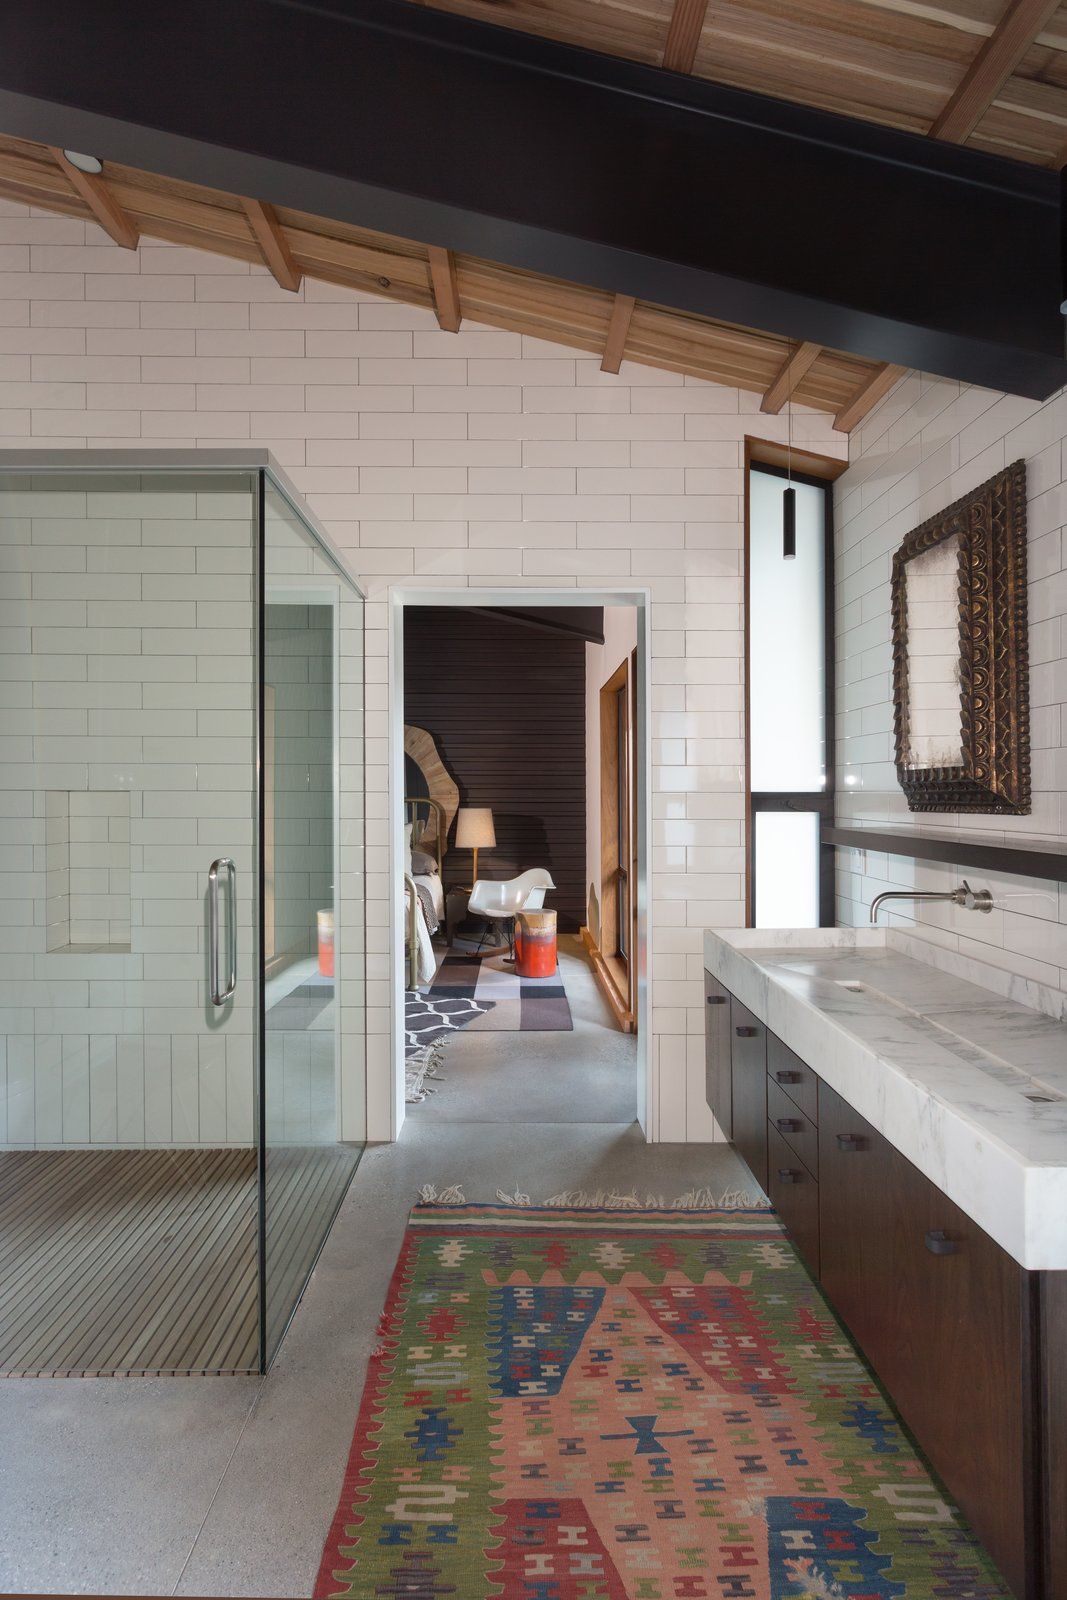 An ensuite bathroom is shared by two of the bedrooms.